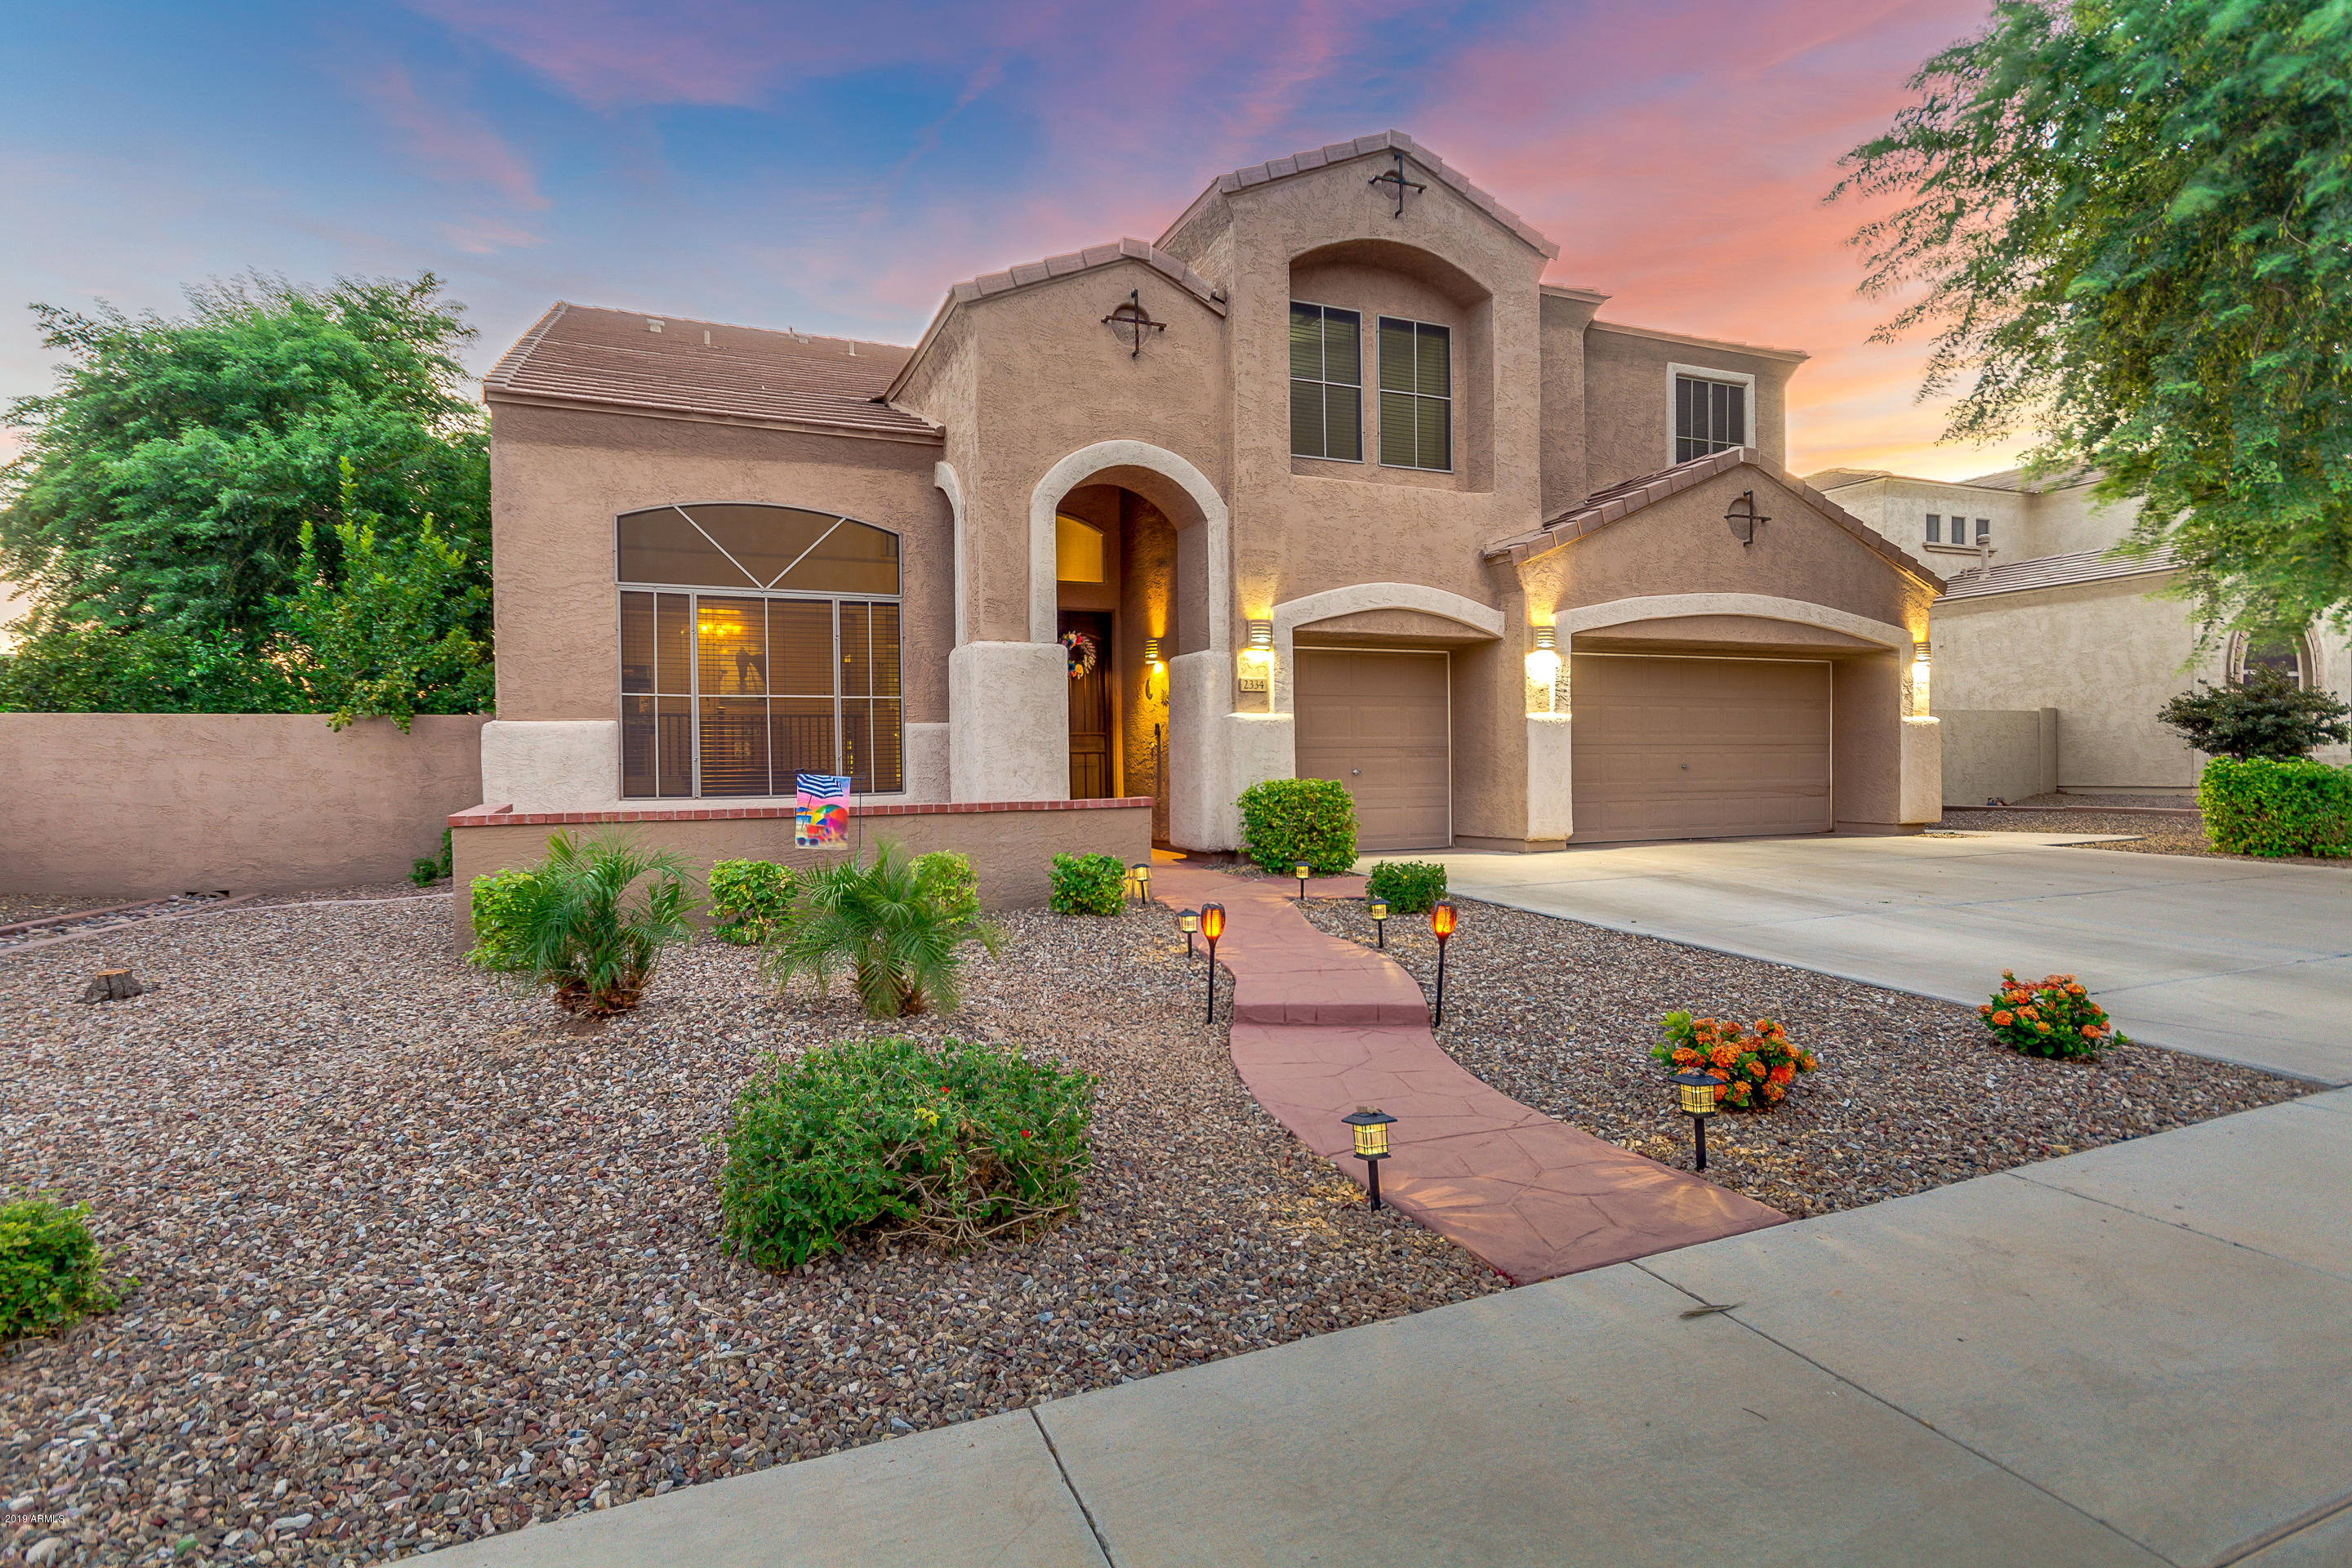 Photo of 2334 S CANFIELD --, Mesa, AZ 85209